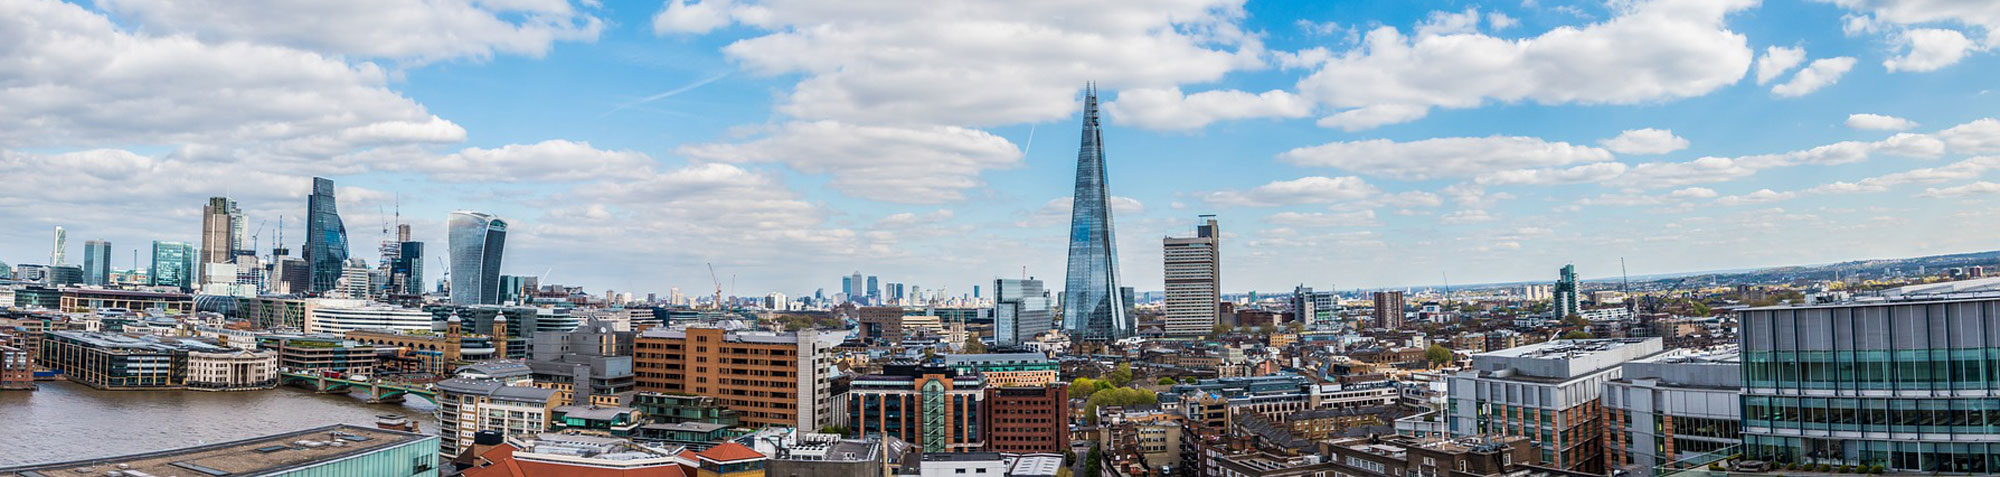 10 Famous Landmarks in London You Can Visit